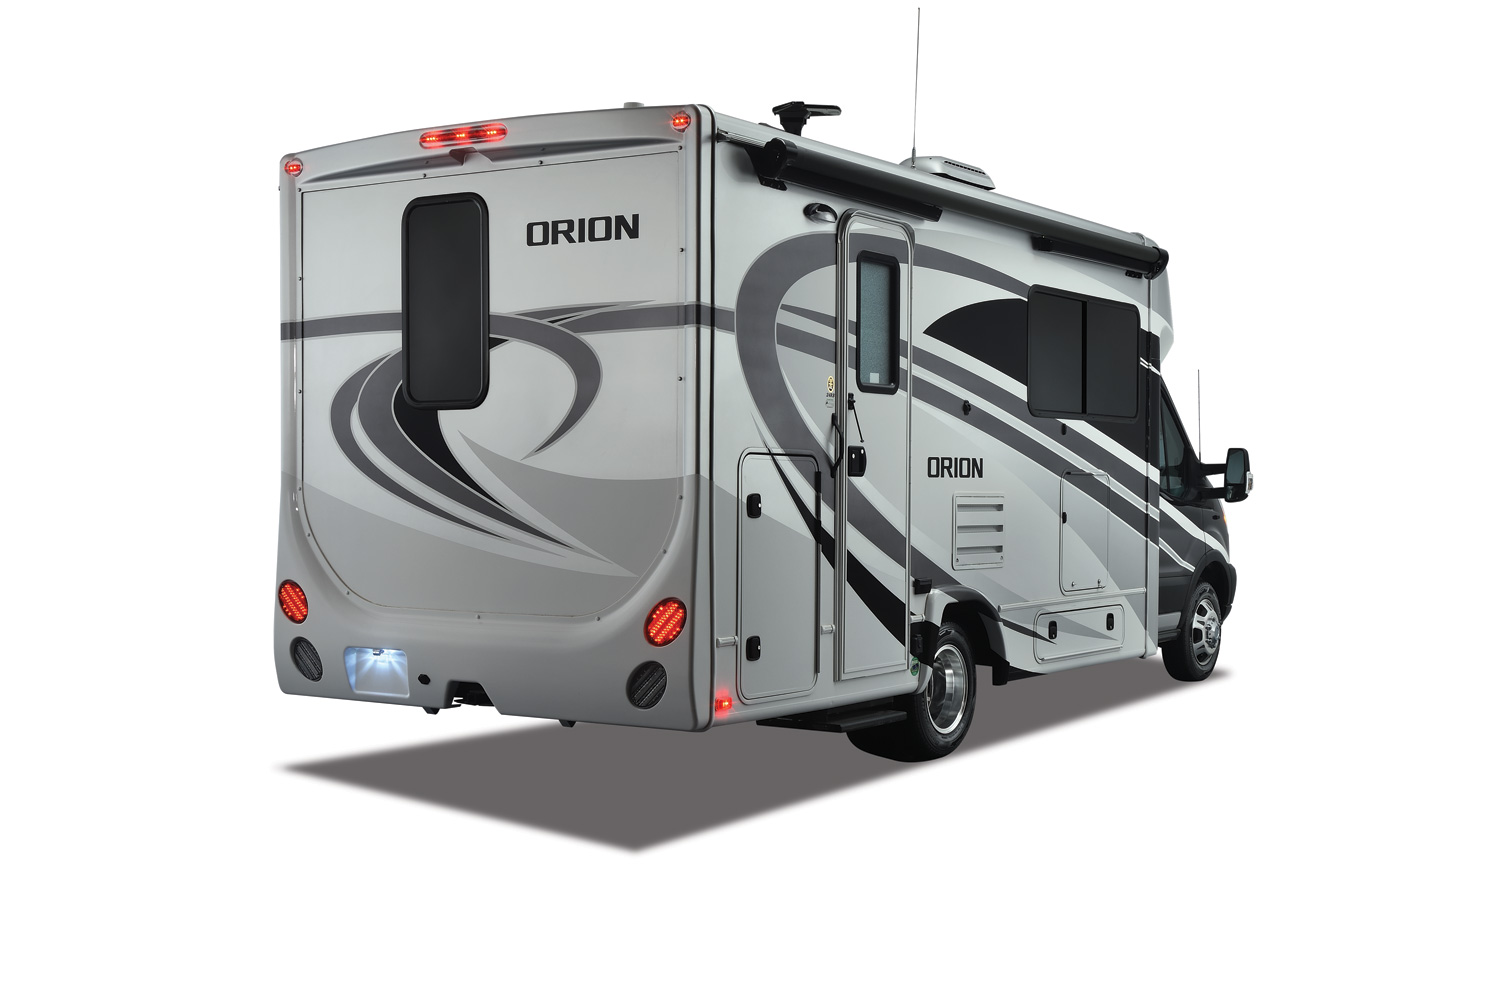 Magnificent Orion Class C Motorhomes By Coachmen Rv Alphanode Cool Chair Designs And Ideas Alphanodeonline